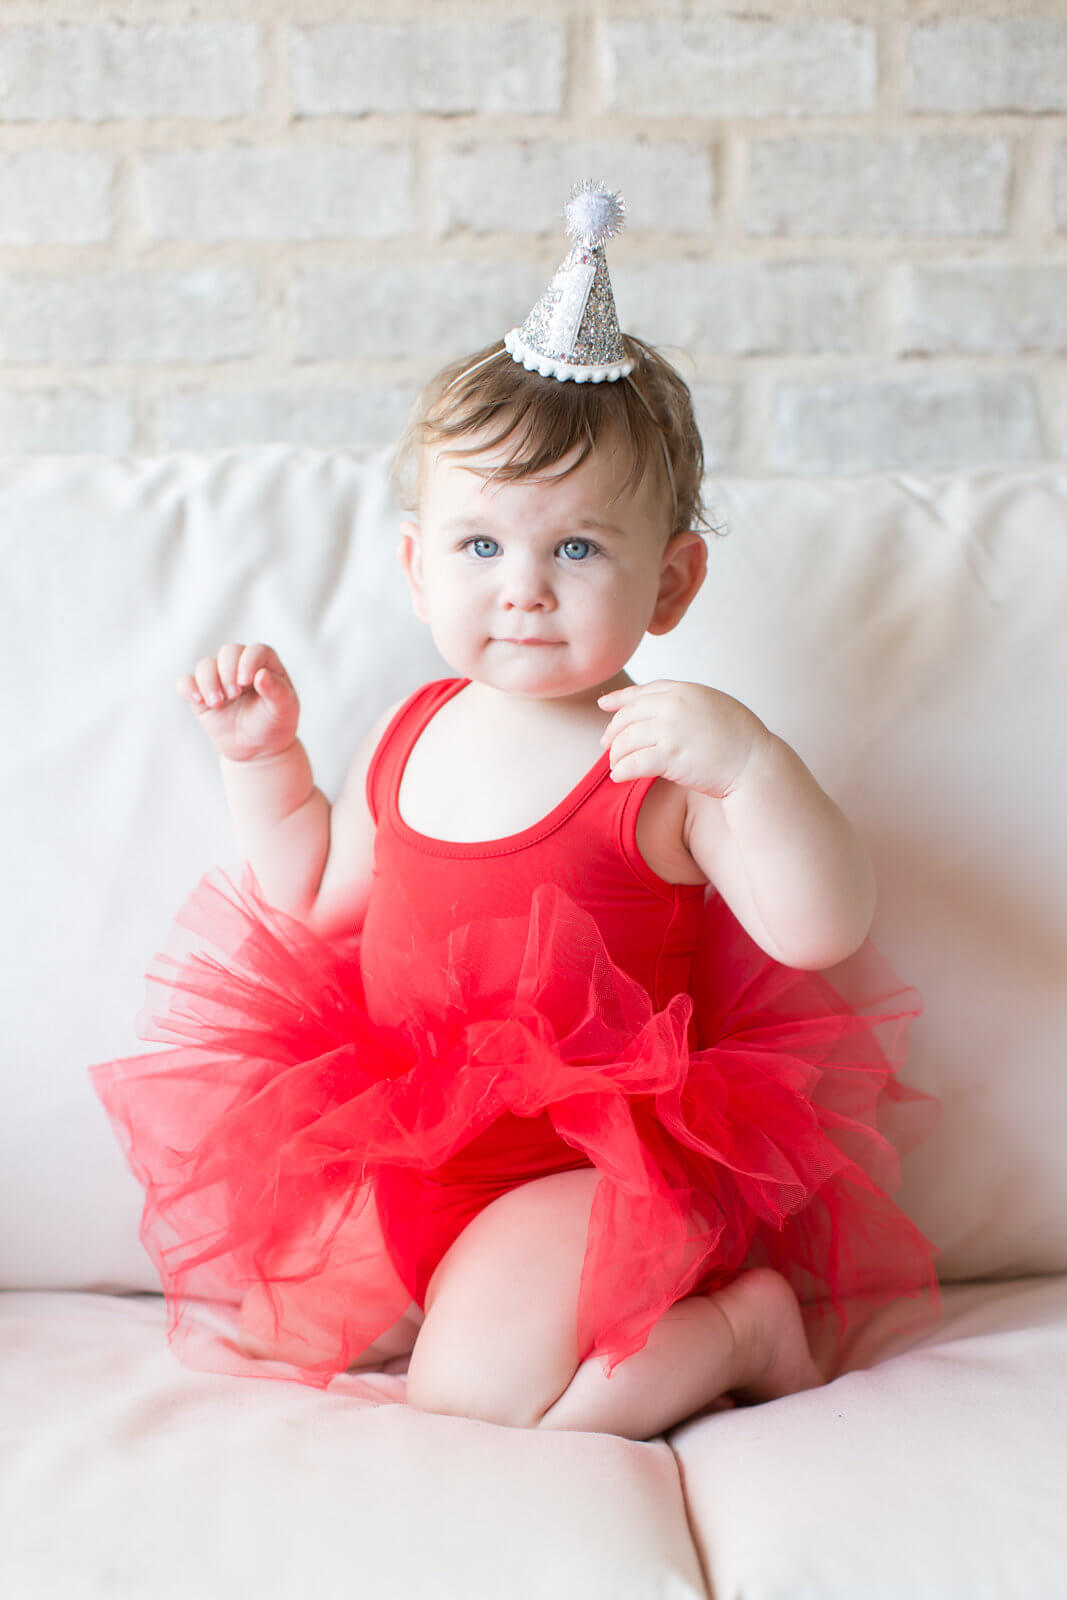 birthday girl in red tutu and party hat